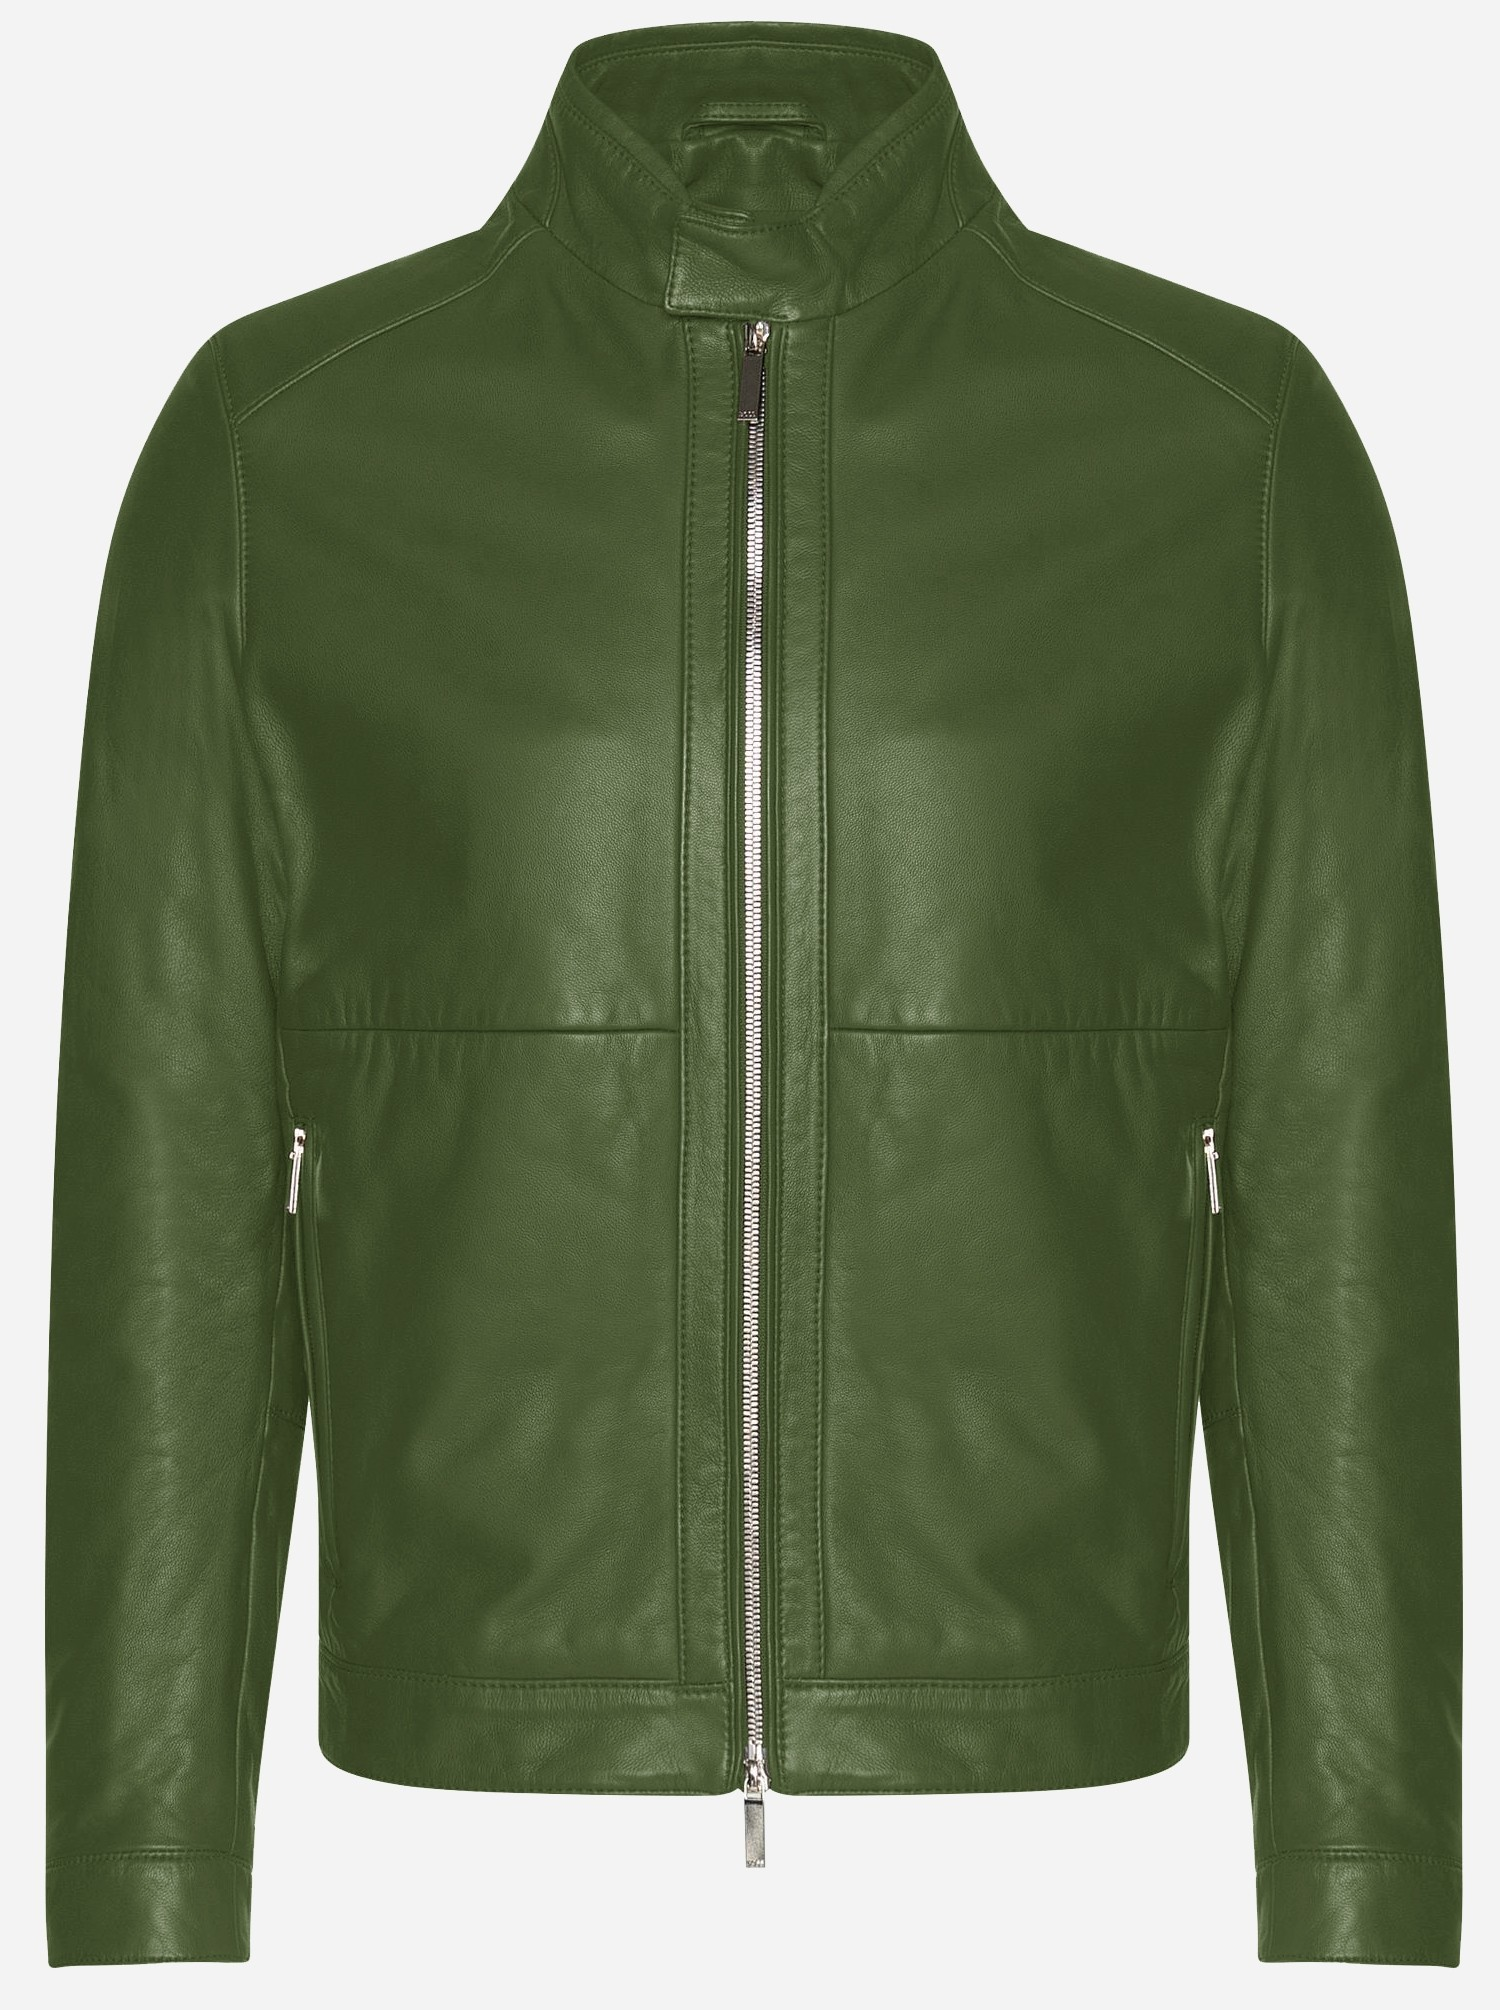 Premium Men Green Cowhide Leather Jacket